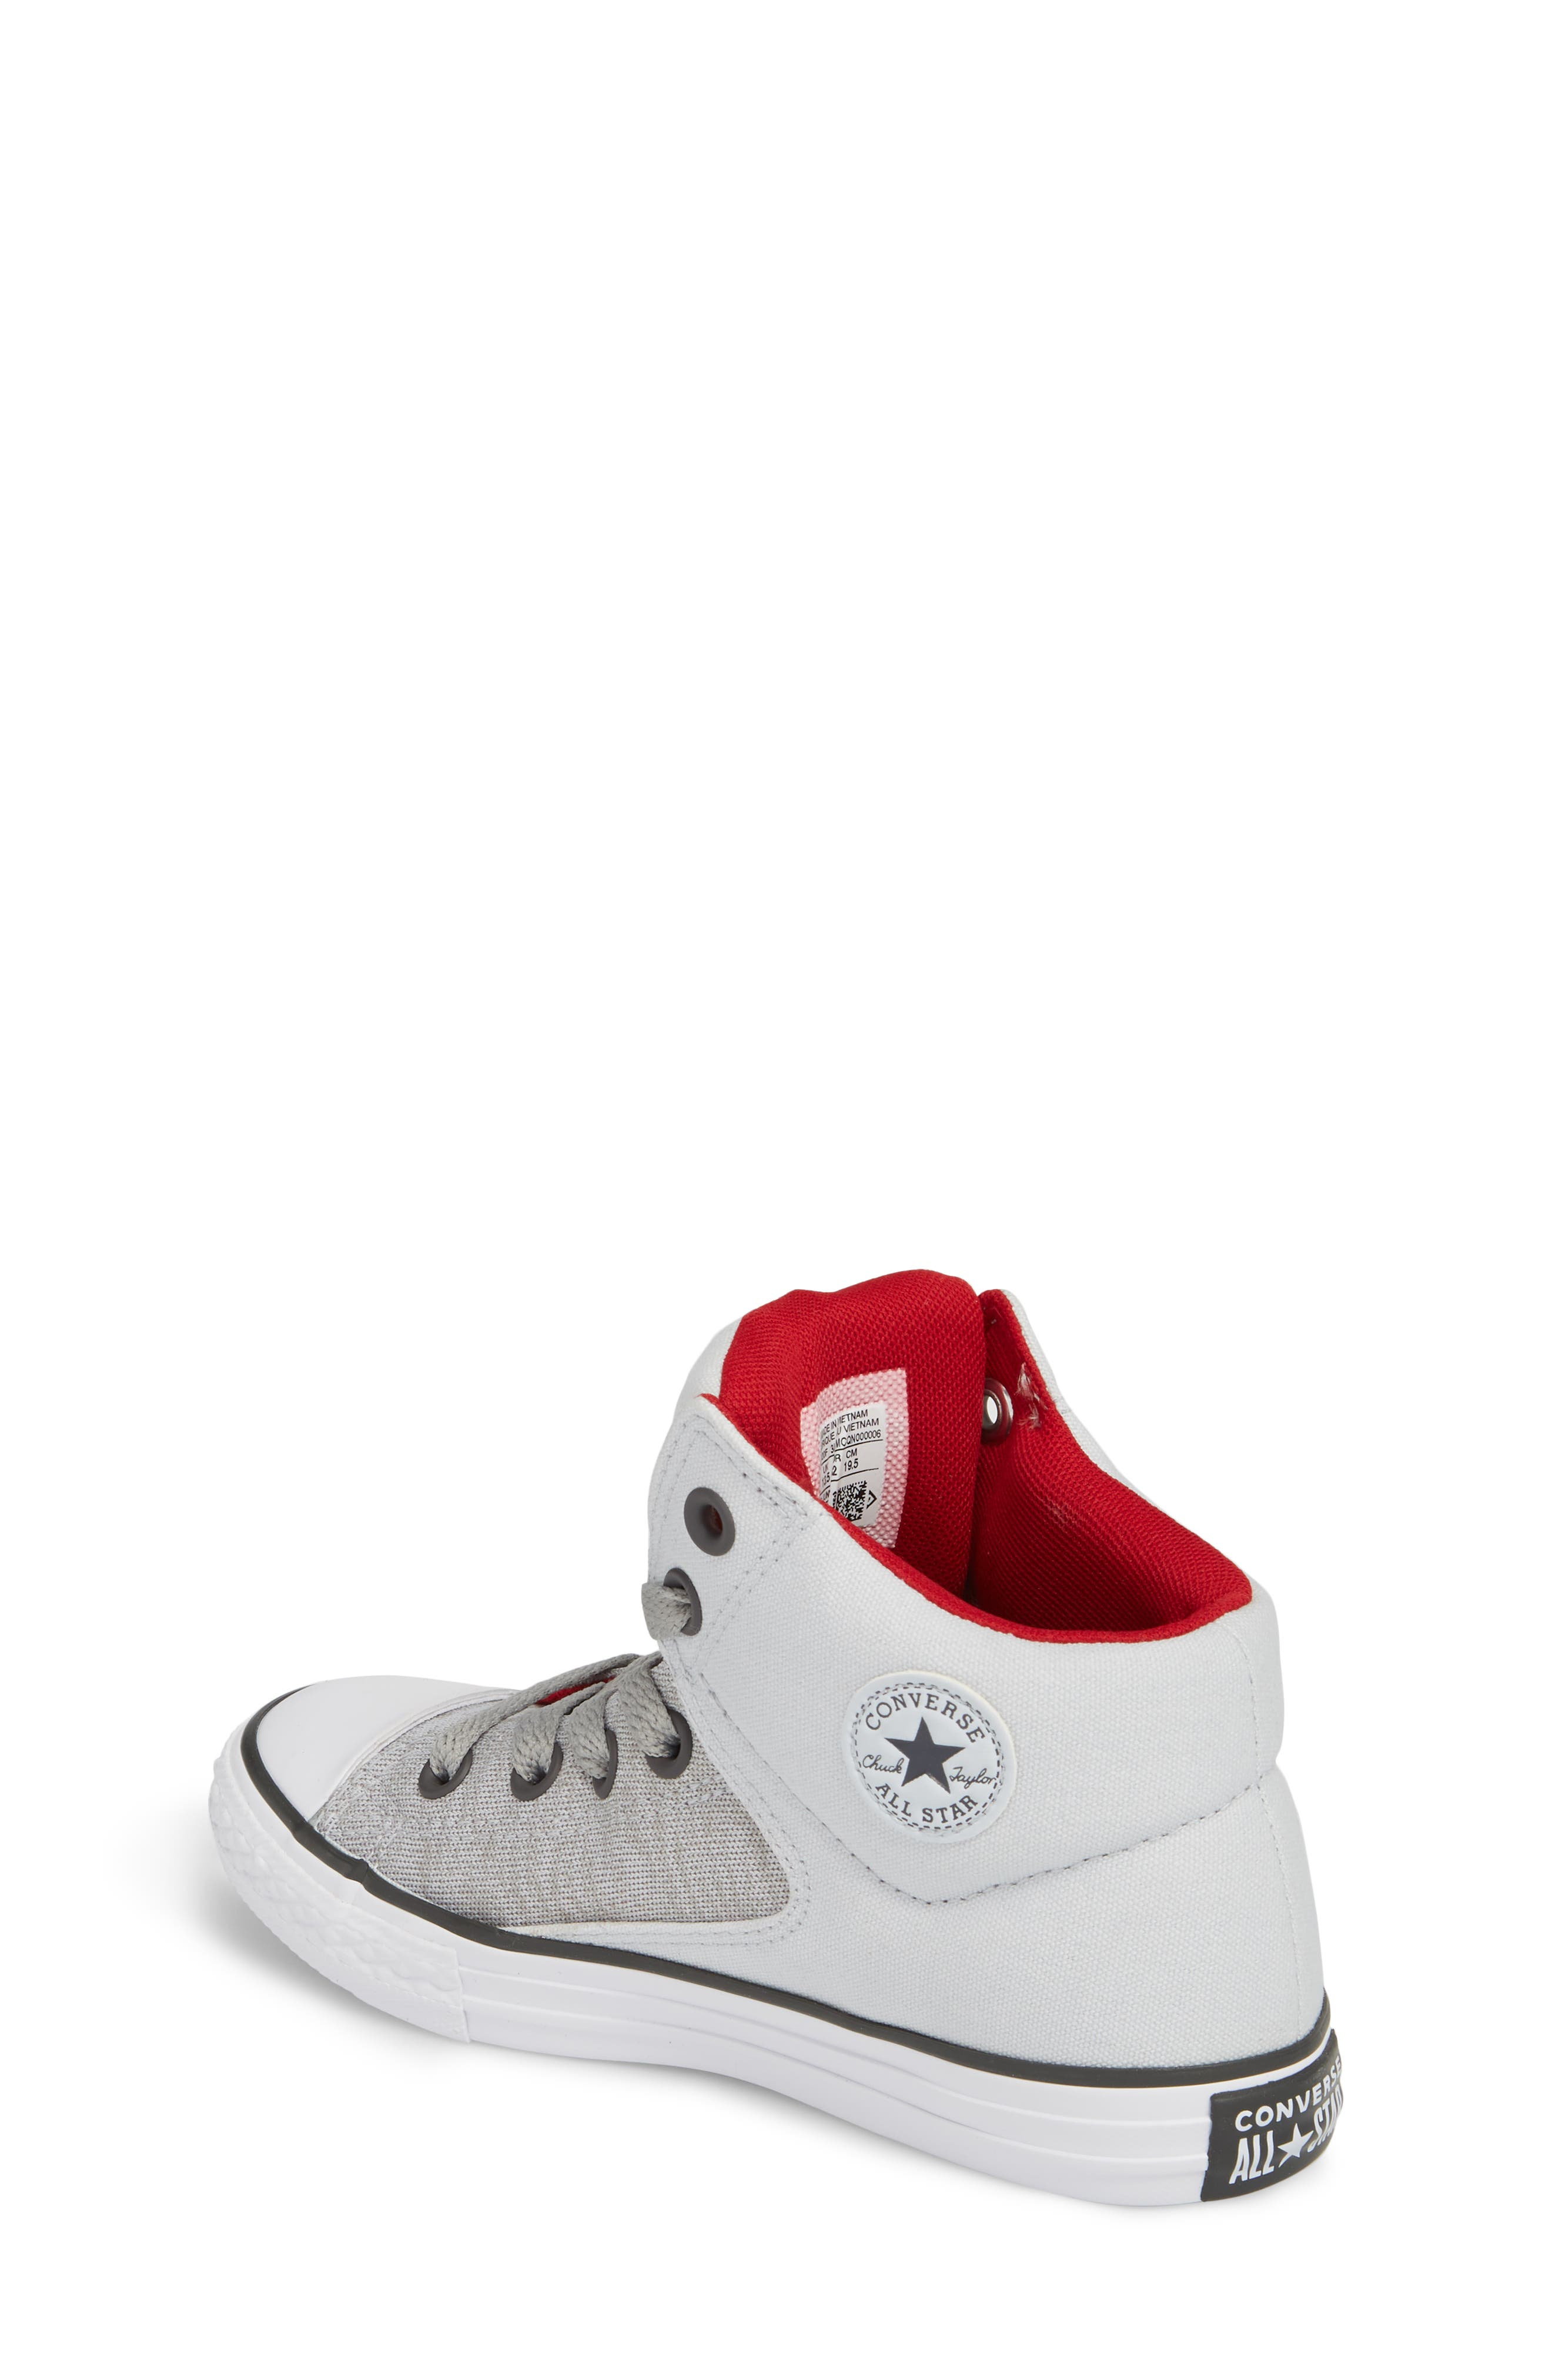 Chuck Taylor<sup>®</sup> All Star<sup>®</sup> High Street High Top Sneaker,                             Alternate thumbnail 4, color,